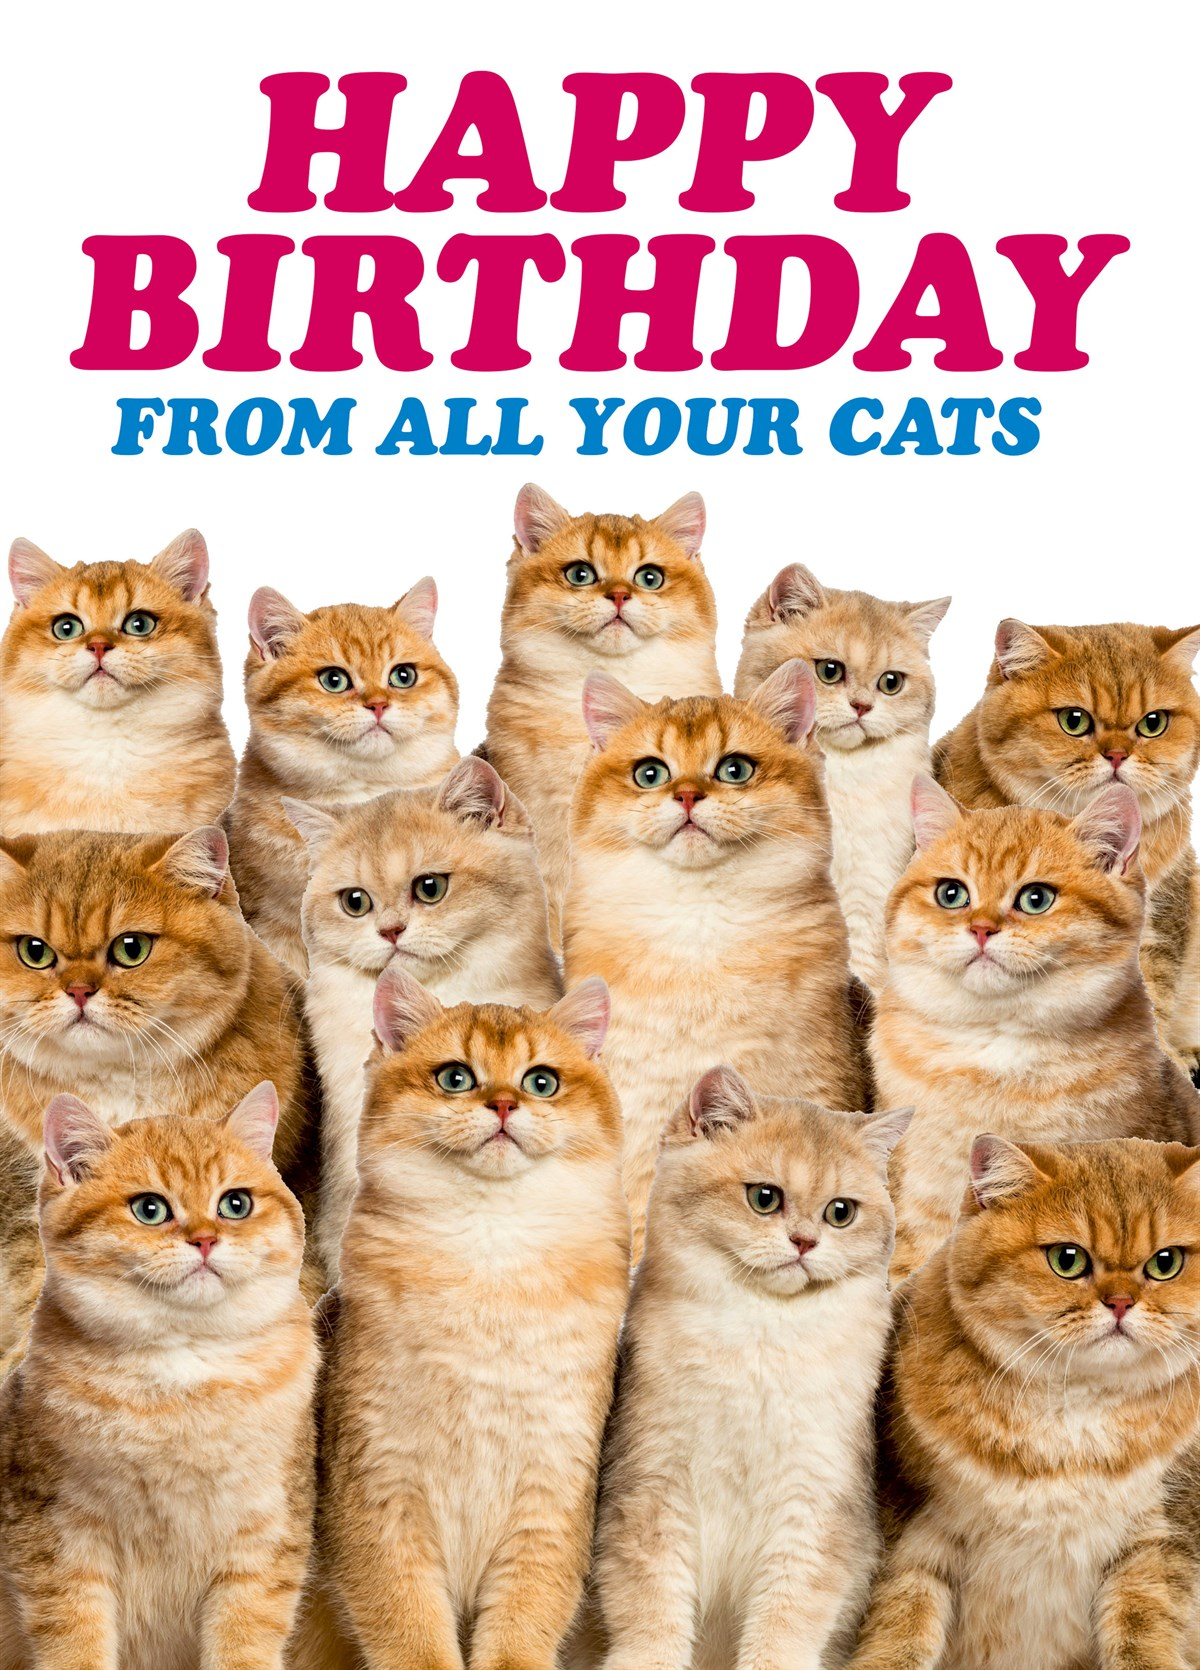 Happy Birthday From All Your Cats Zoomed Image Hover To Zoom